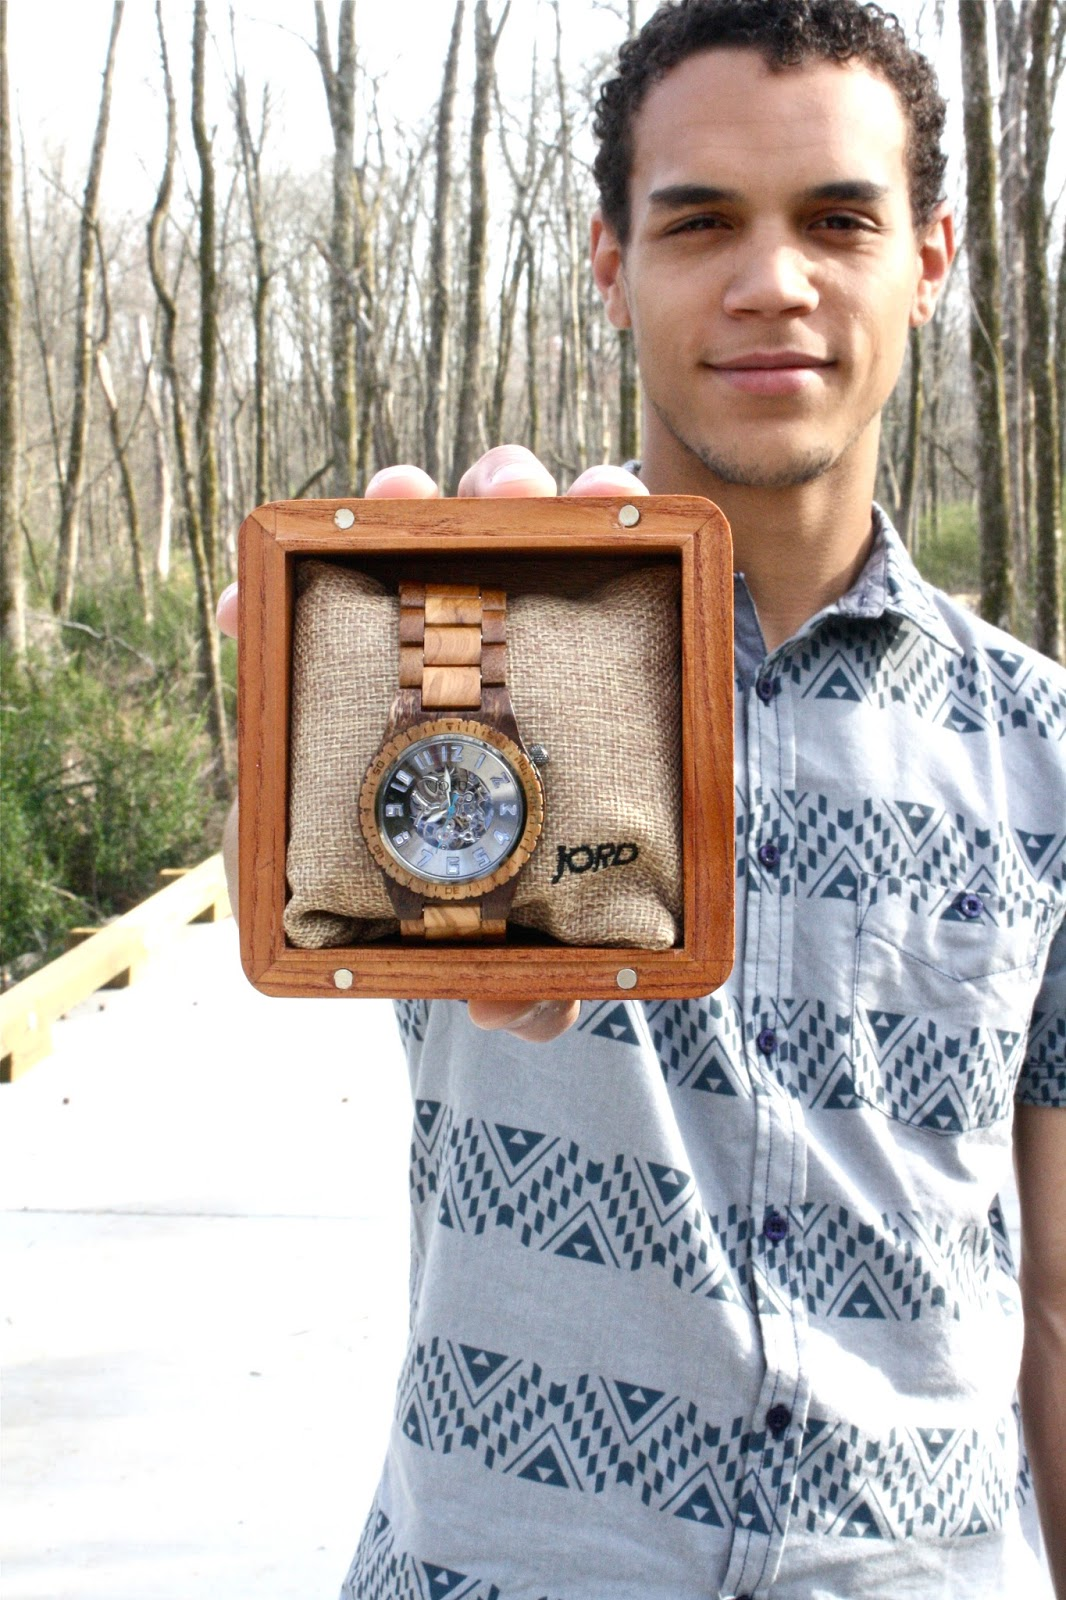 JORD_wooden_watches